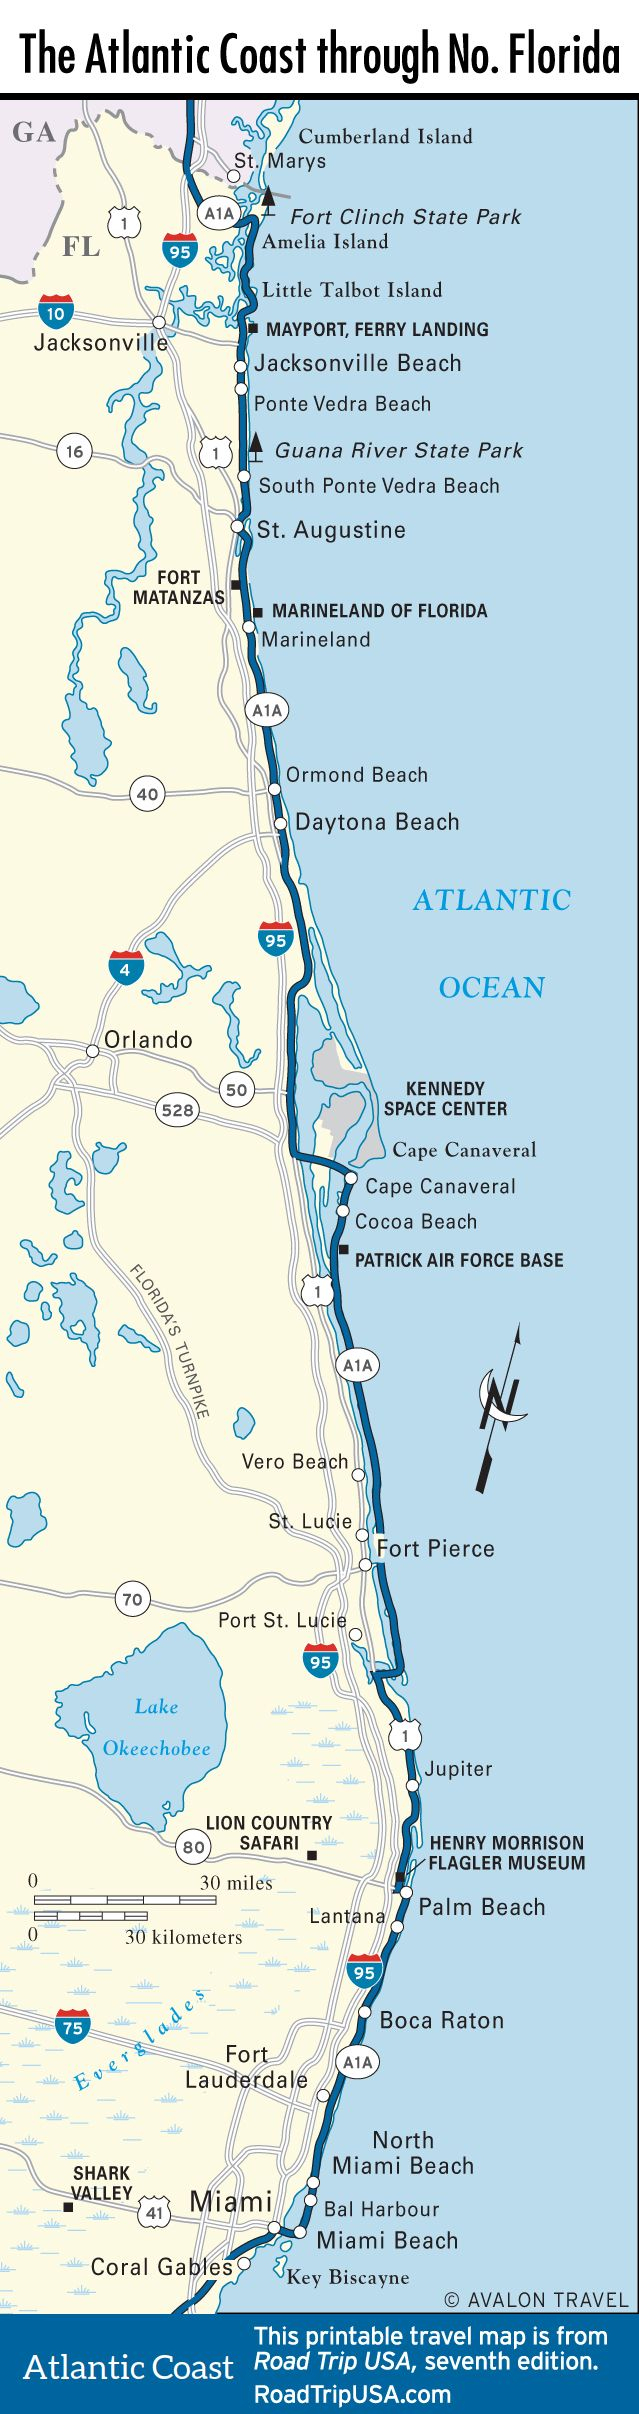 Map Of The Atlantic Coast Through Northern Florida. | Florida A1A - Map Of Florida Beaches